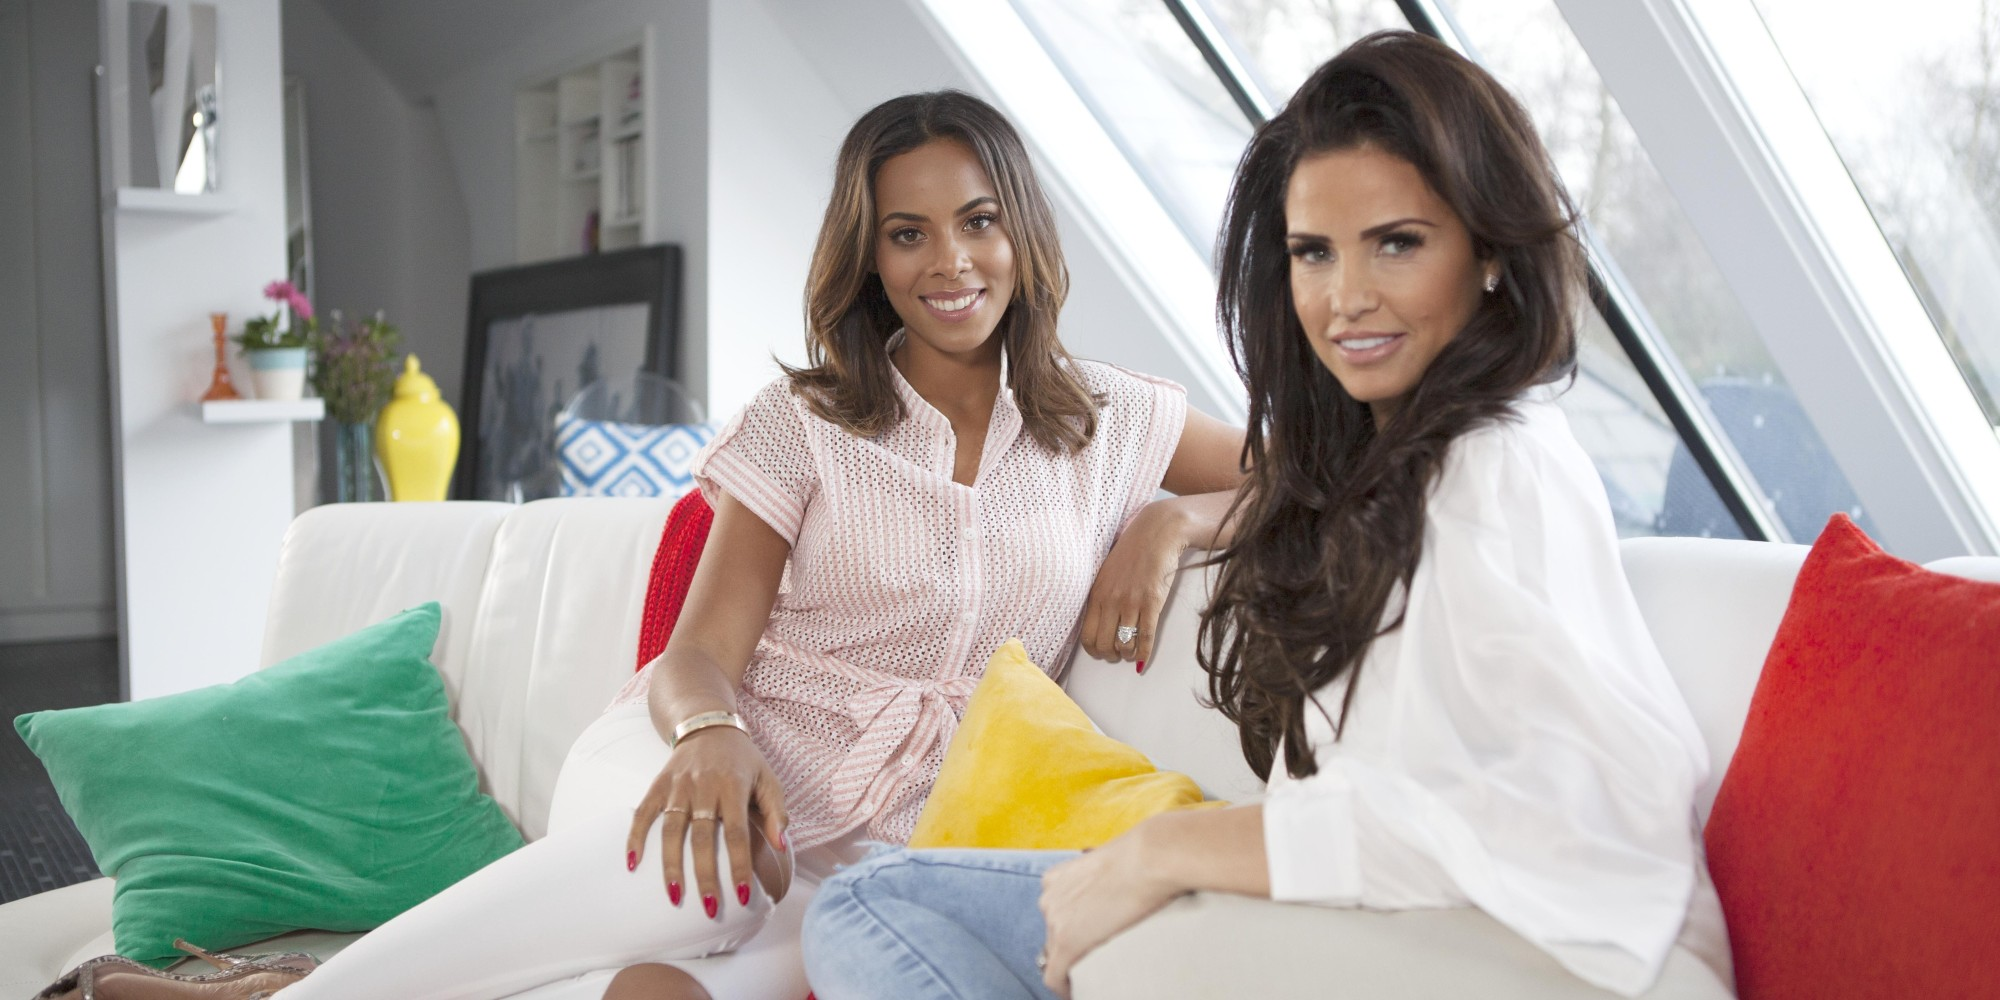 Katie Price reveals she wants to have as many children as